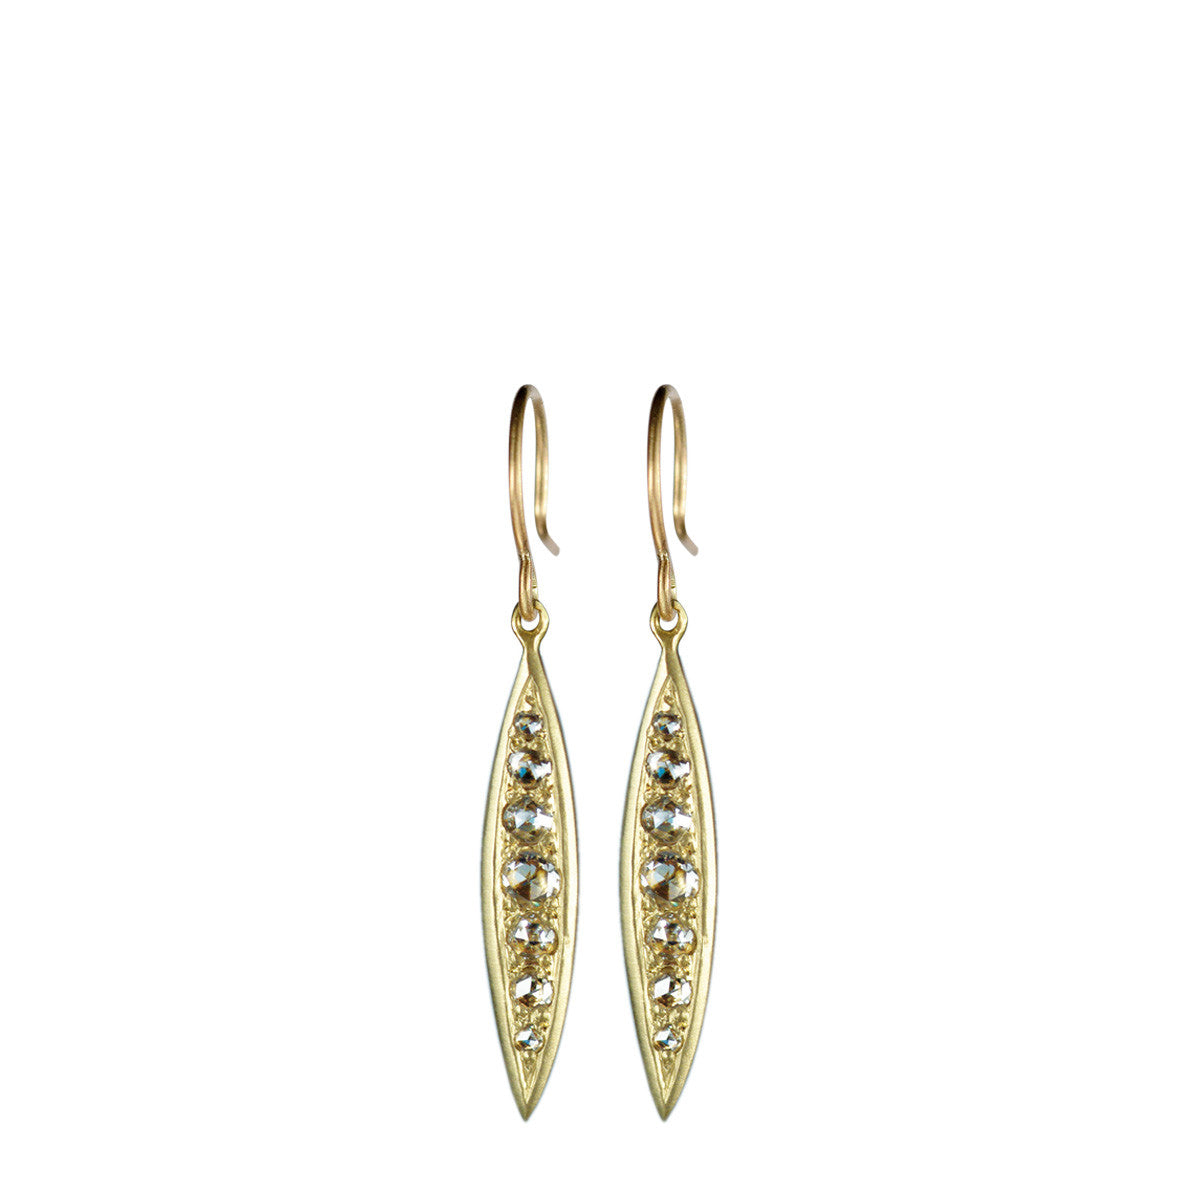 18K Gold Fine Bombay Sliver Diamond Earrings